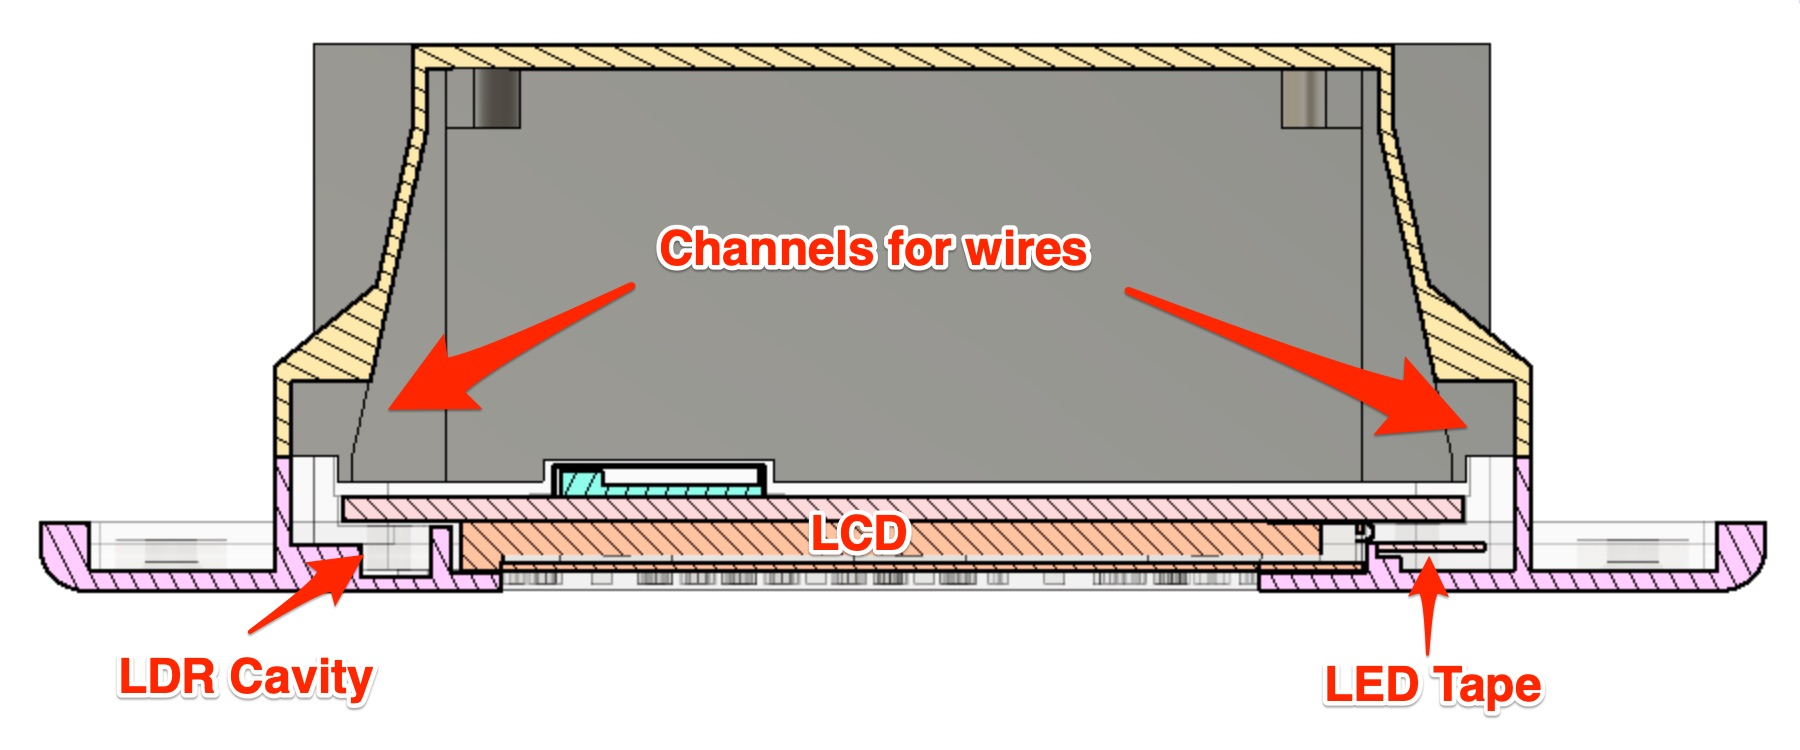 Screenshot of Fusion360, showing side profile of HASP, annotated to indicate channels in enclosure for wires leading to LED tape, LDR in relation to LCD